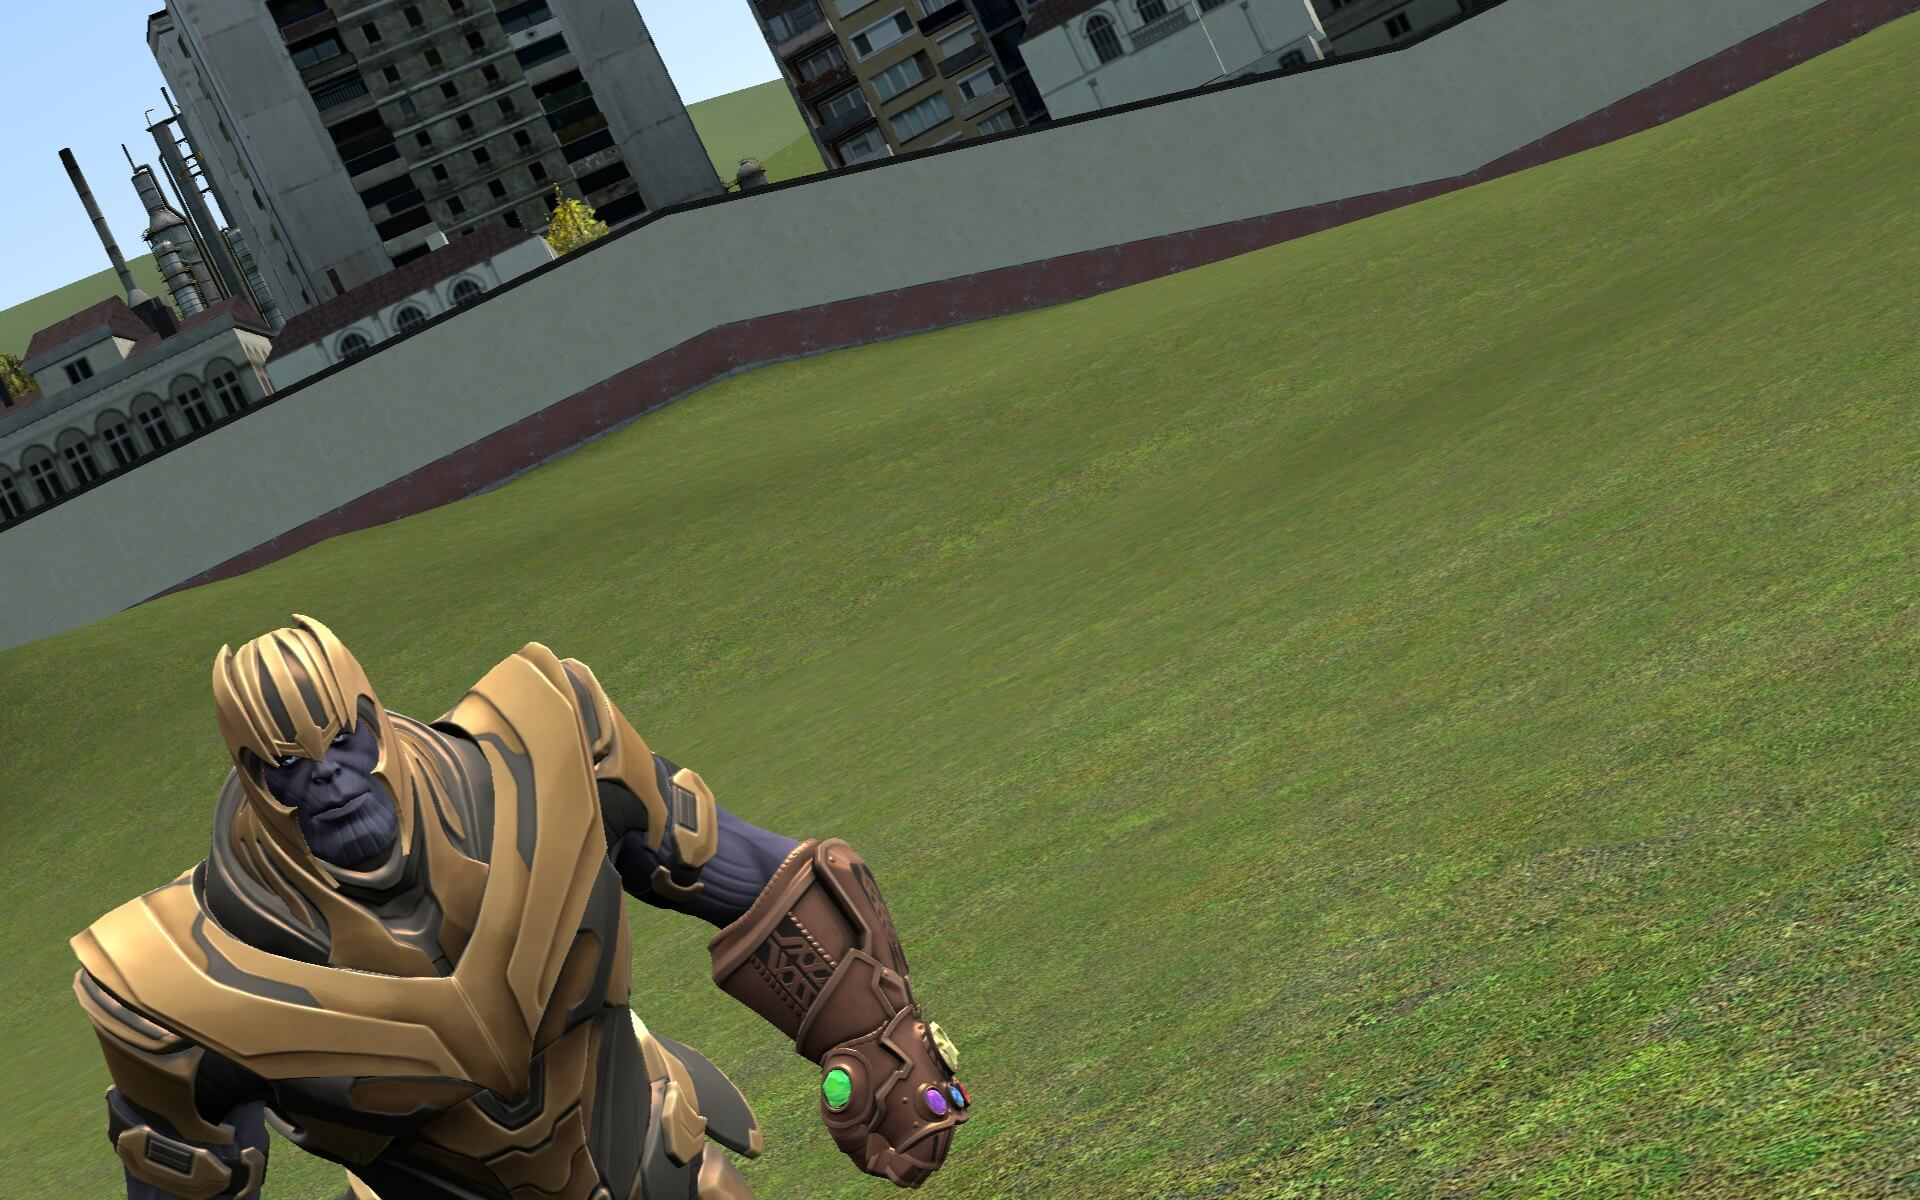 Garry's Mod - Thanos Nextbot (Joke)